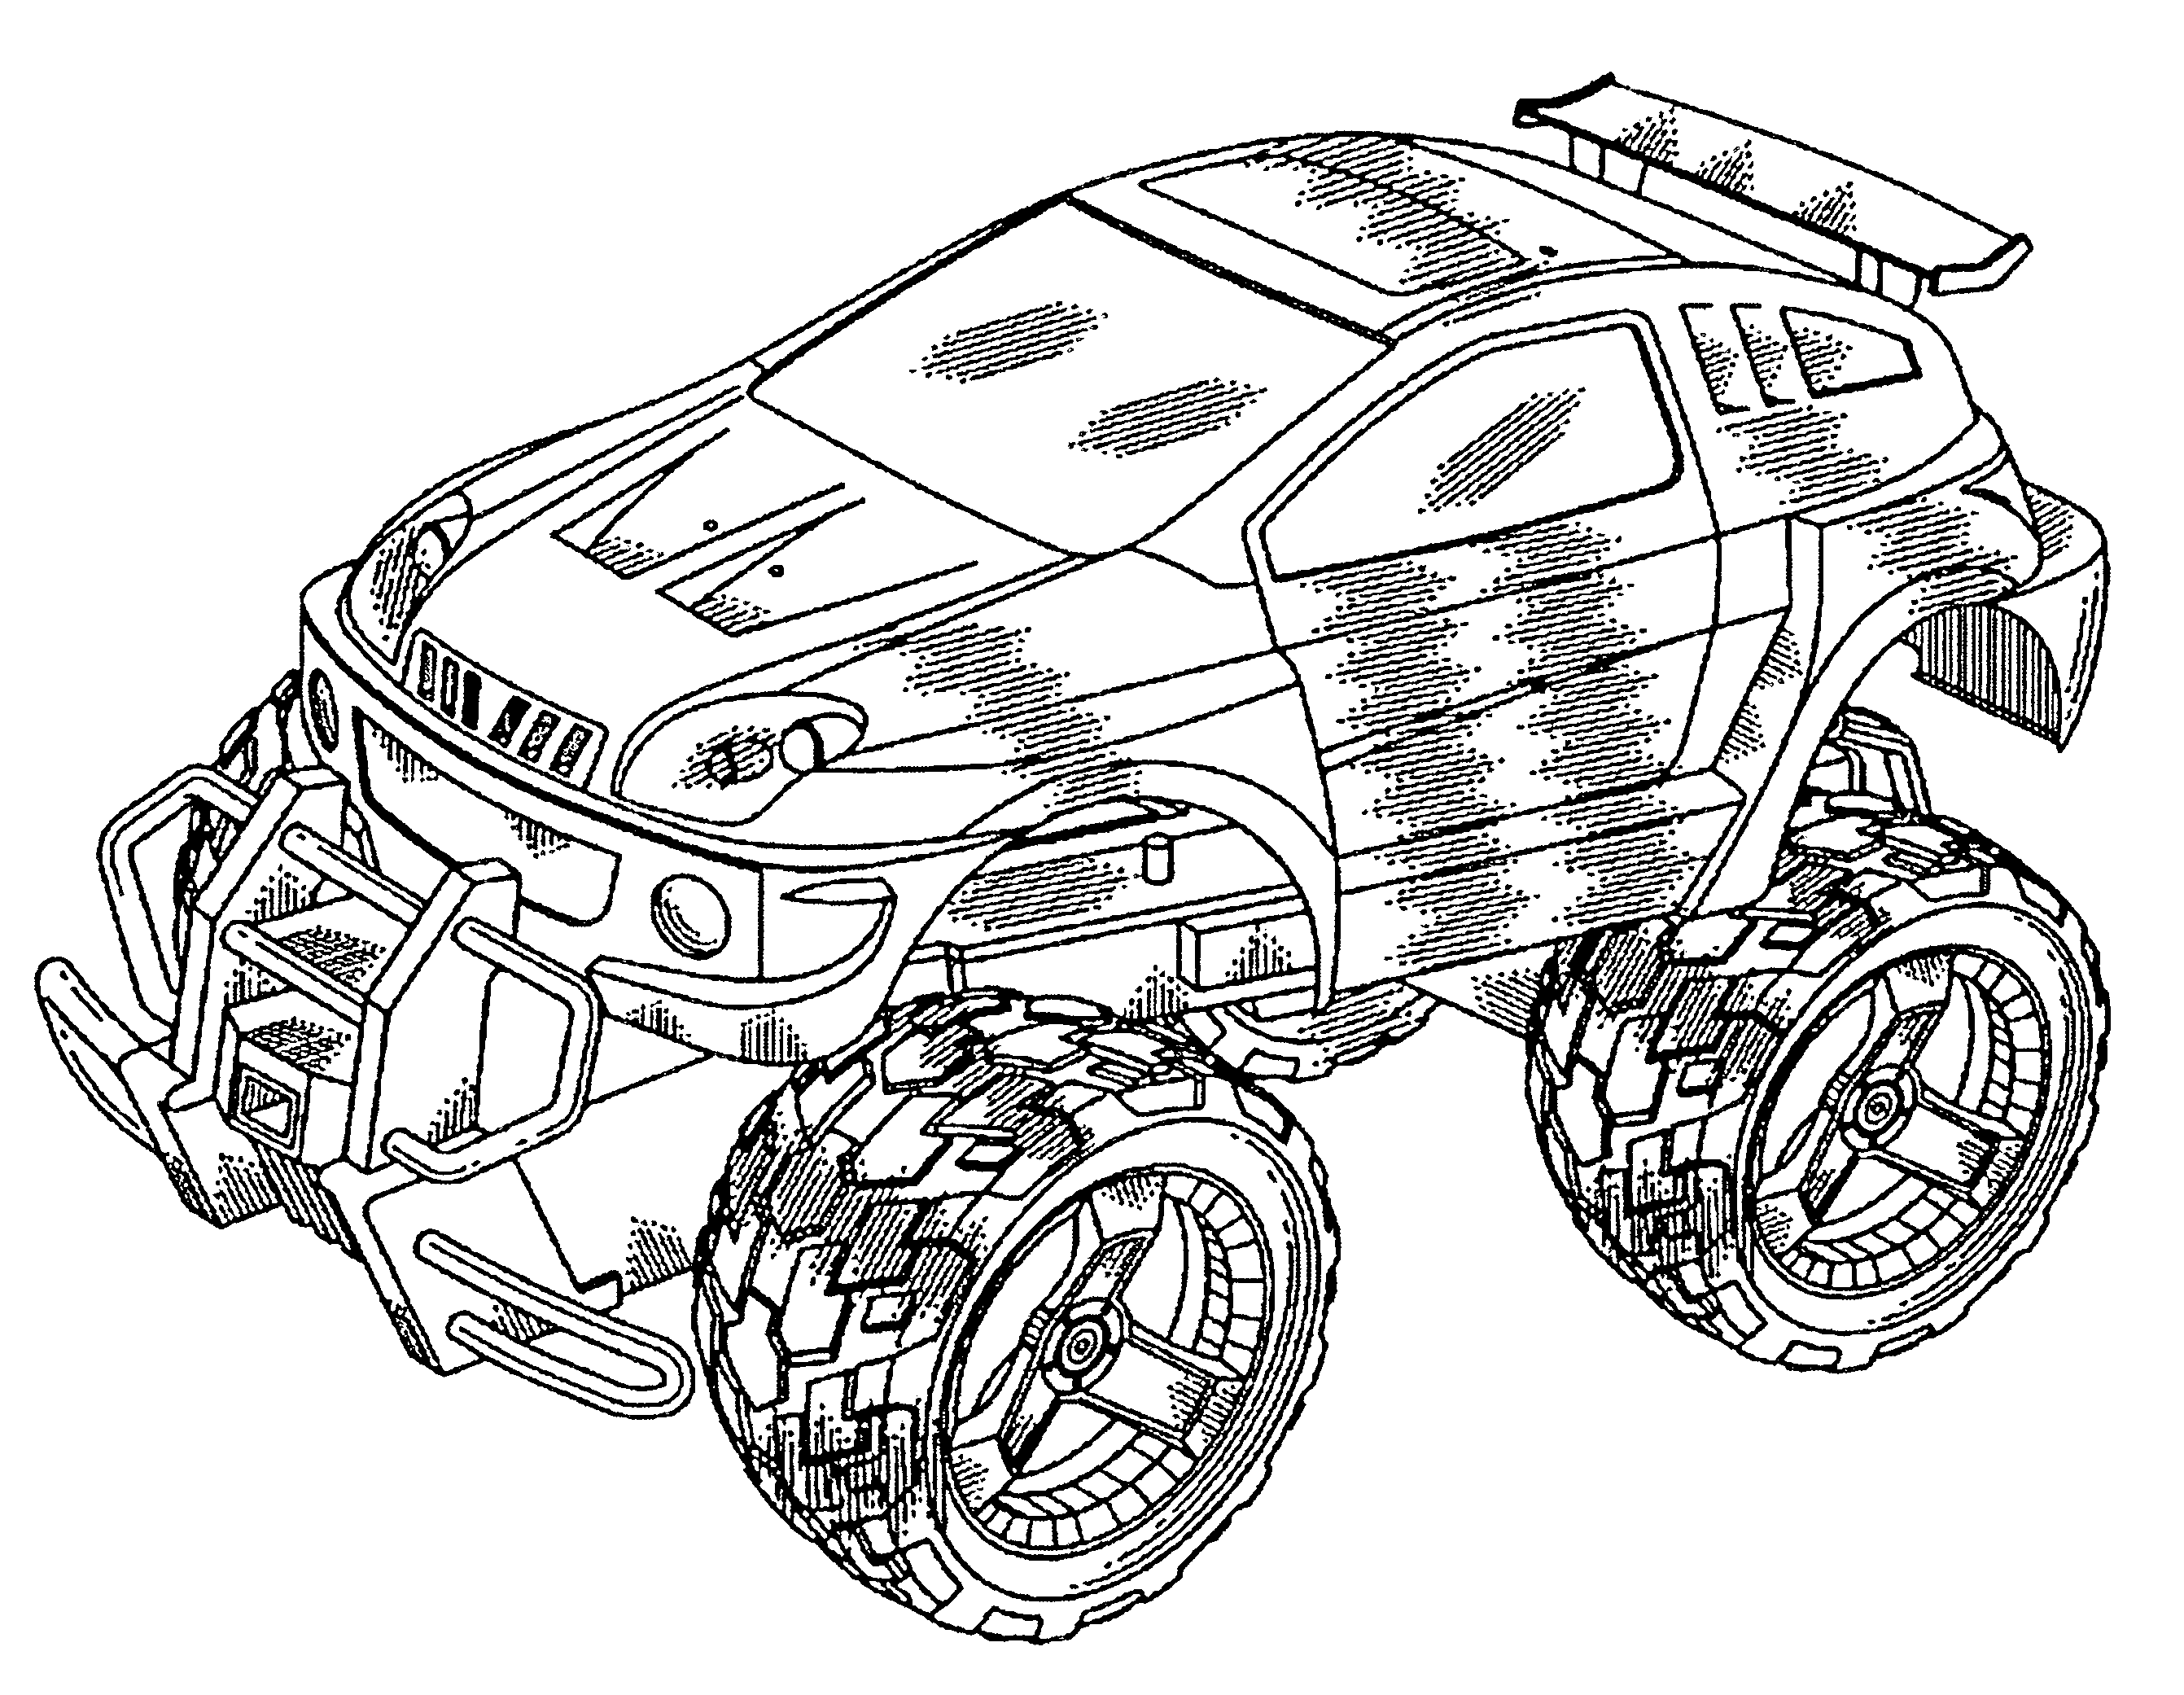 patent usd498798 - remote control toy car